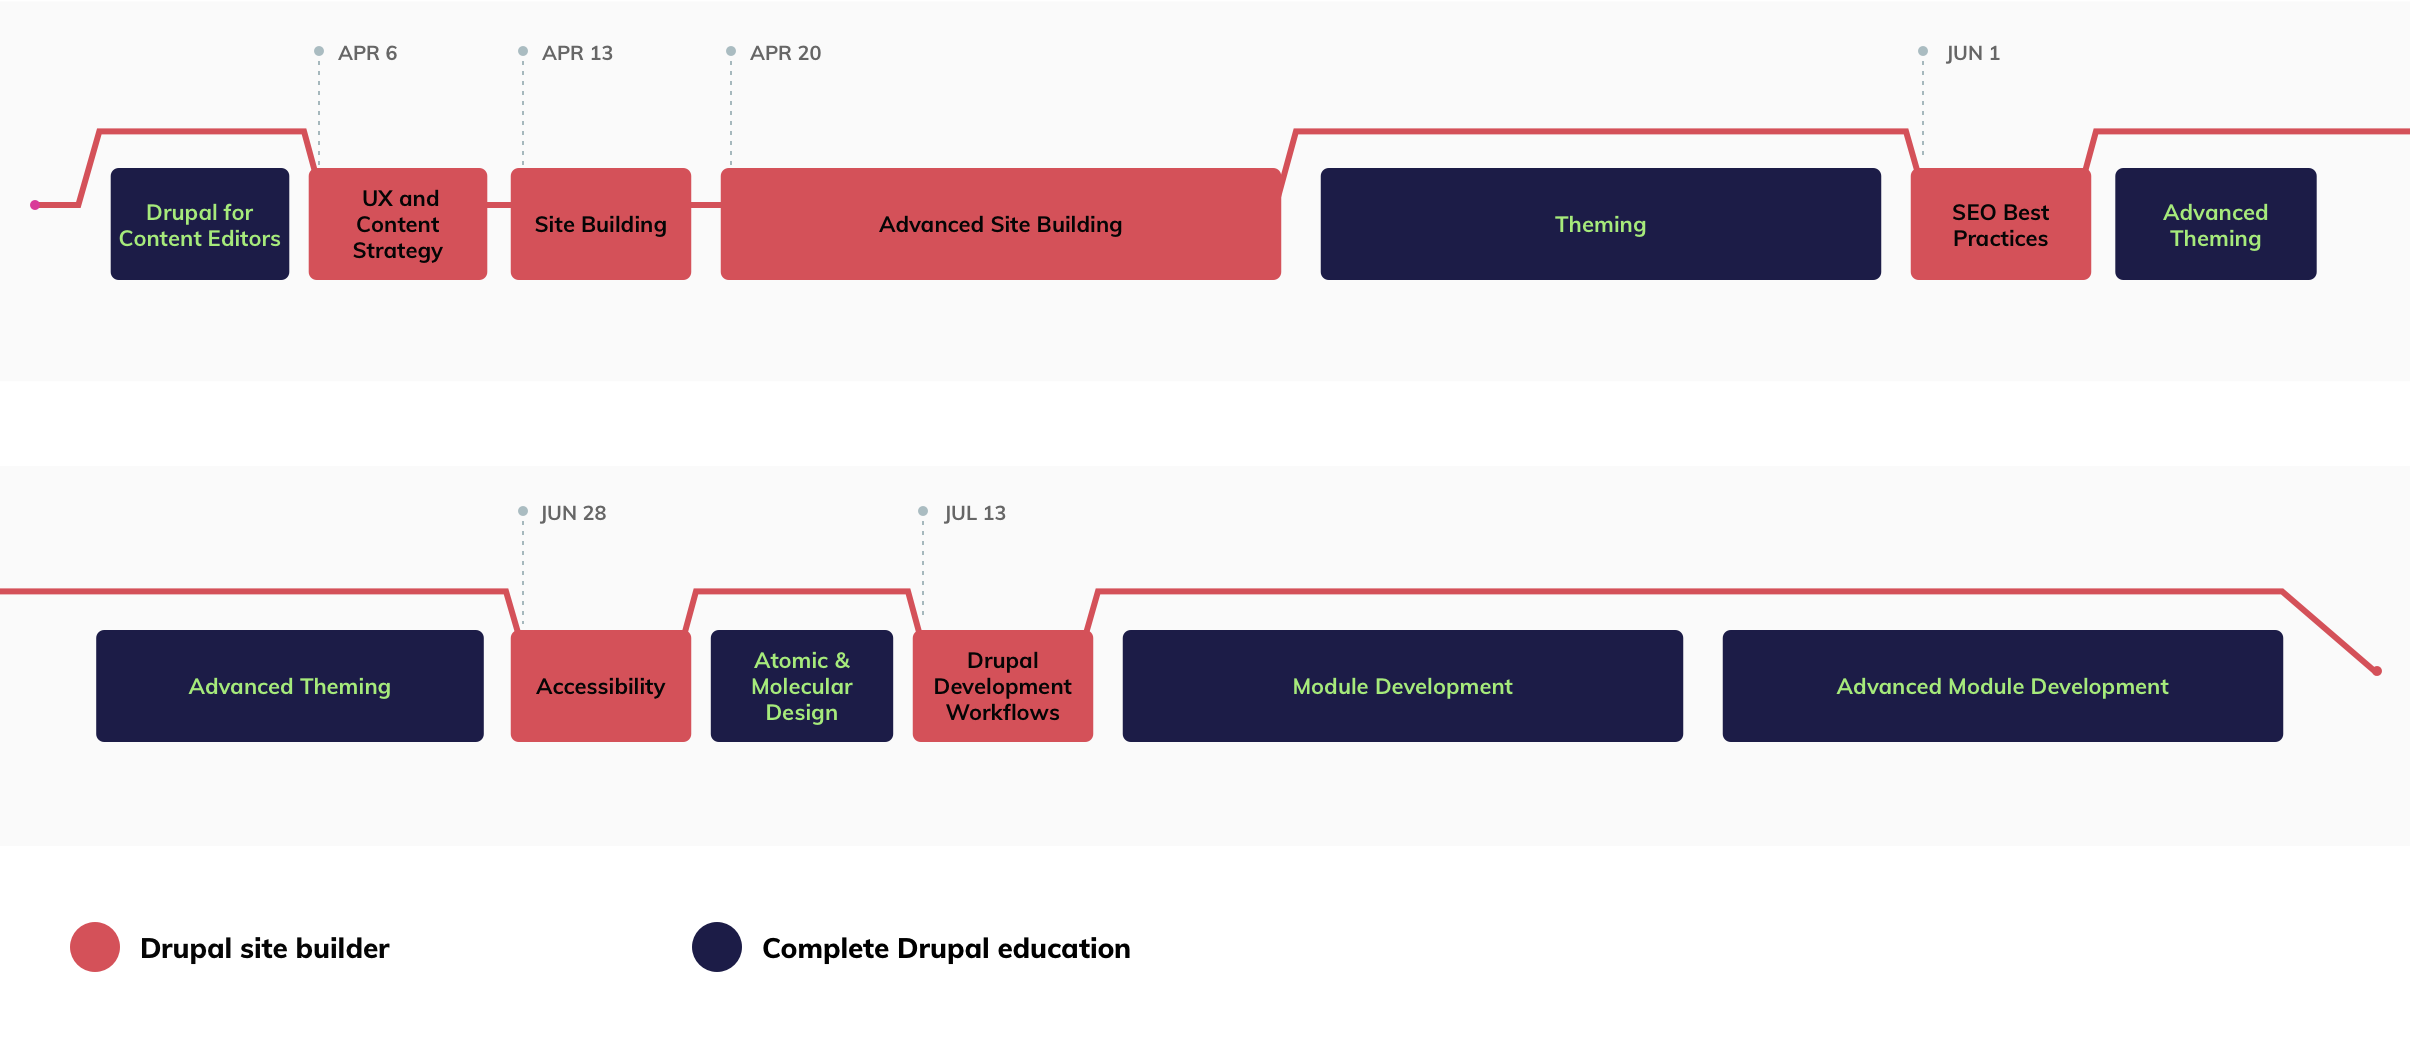 Drupal Site Builder Track graphic showing all courses and dates in order of appearance